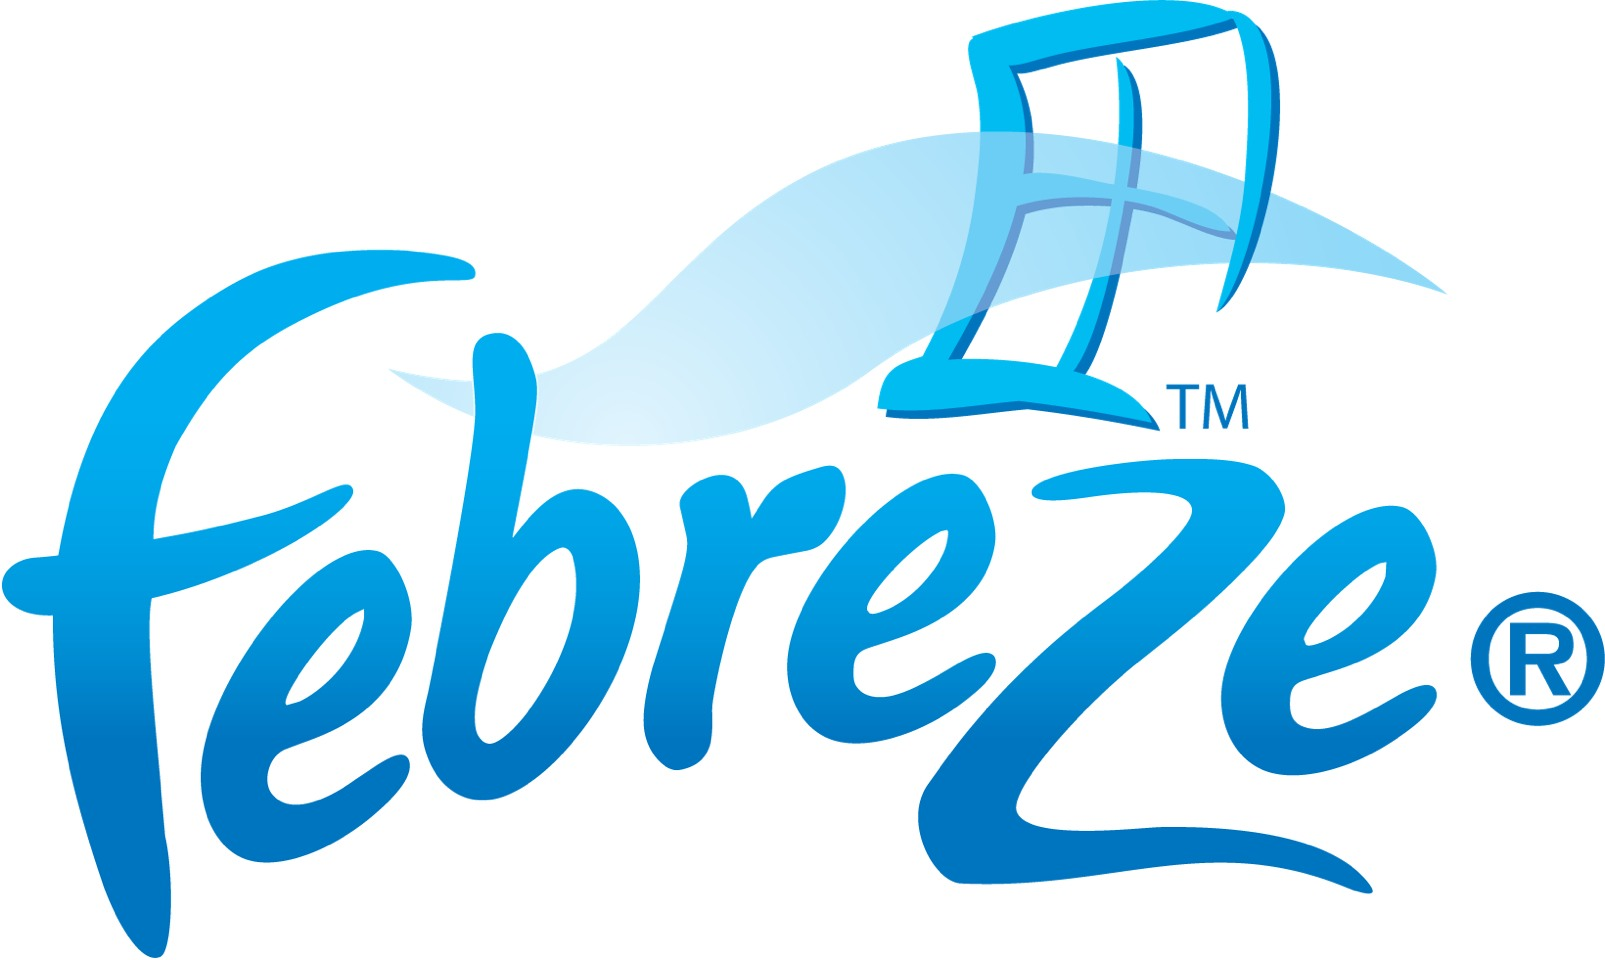 💨• put febreze car deodorants on your vents in your room to make it smell good -